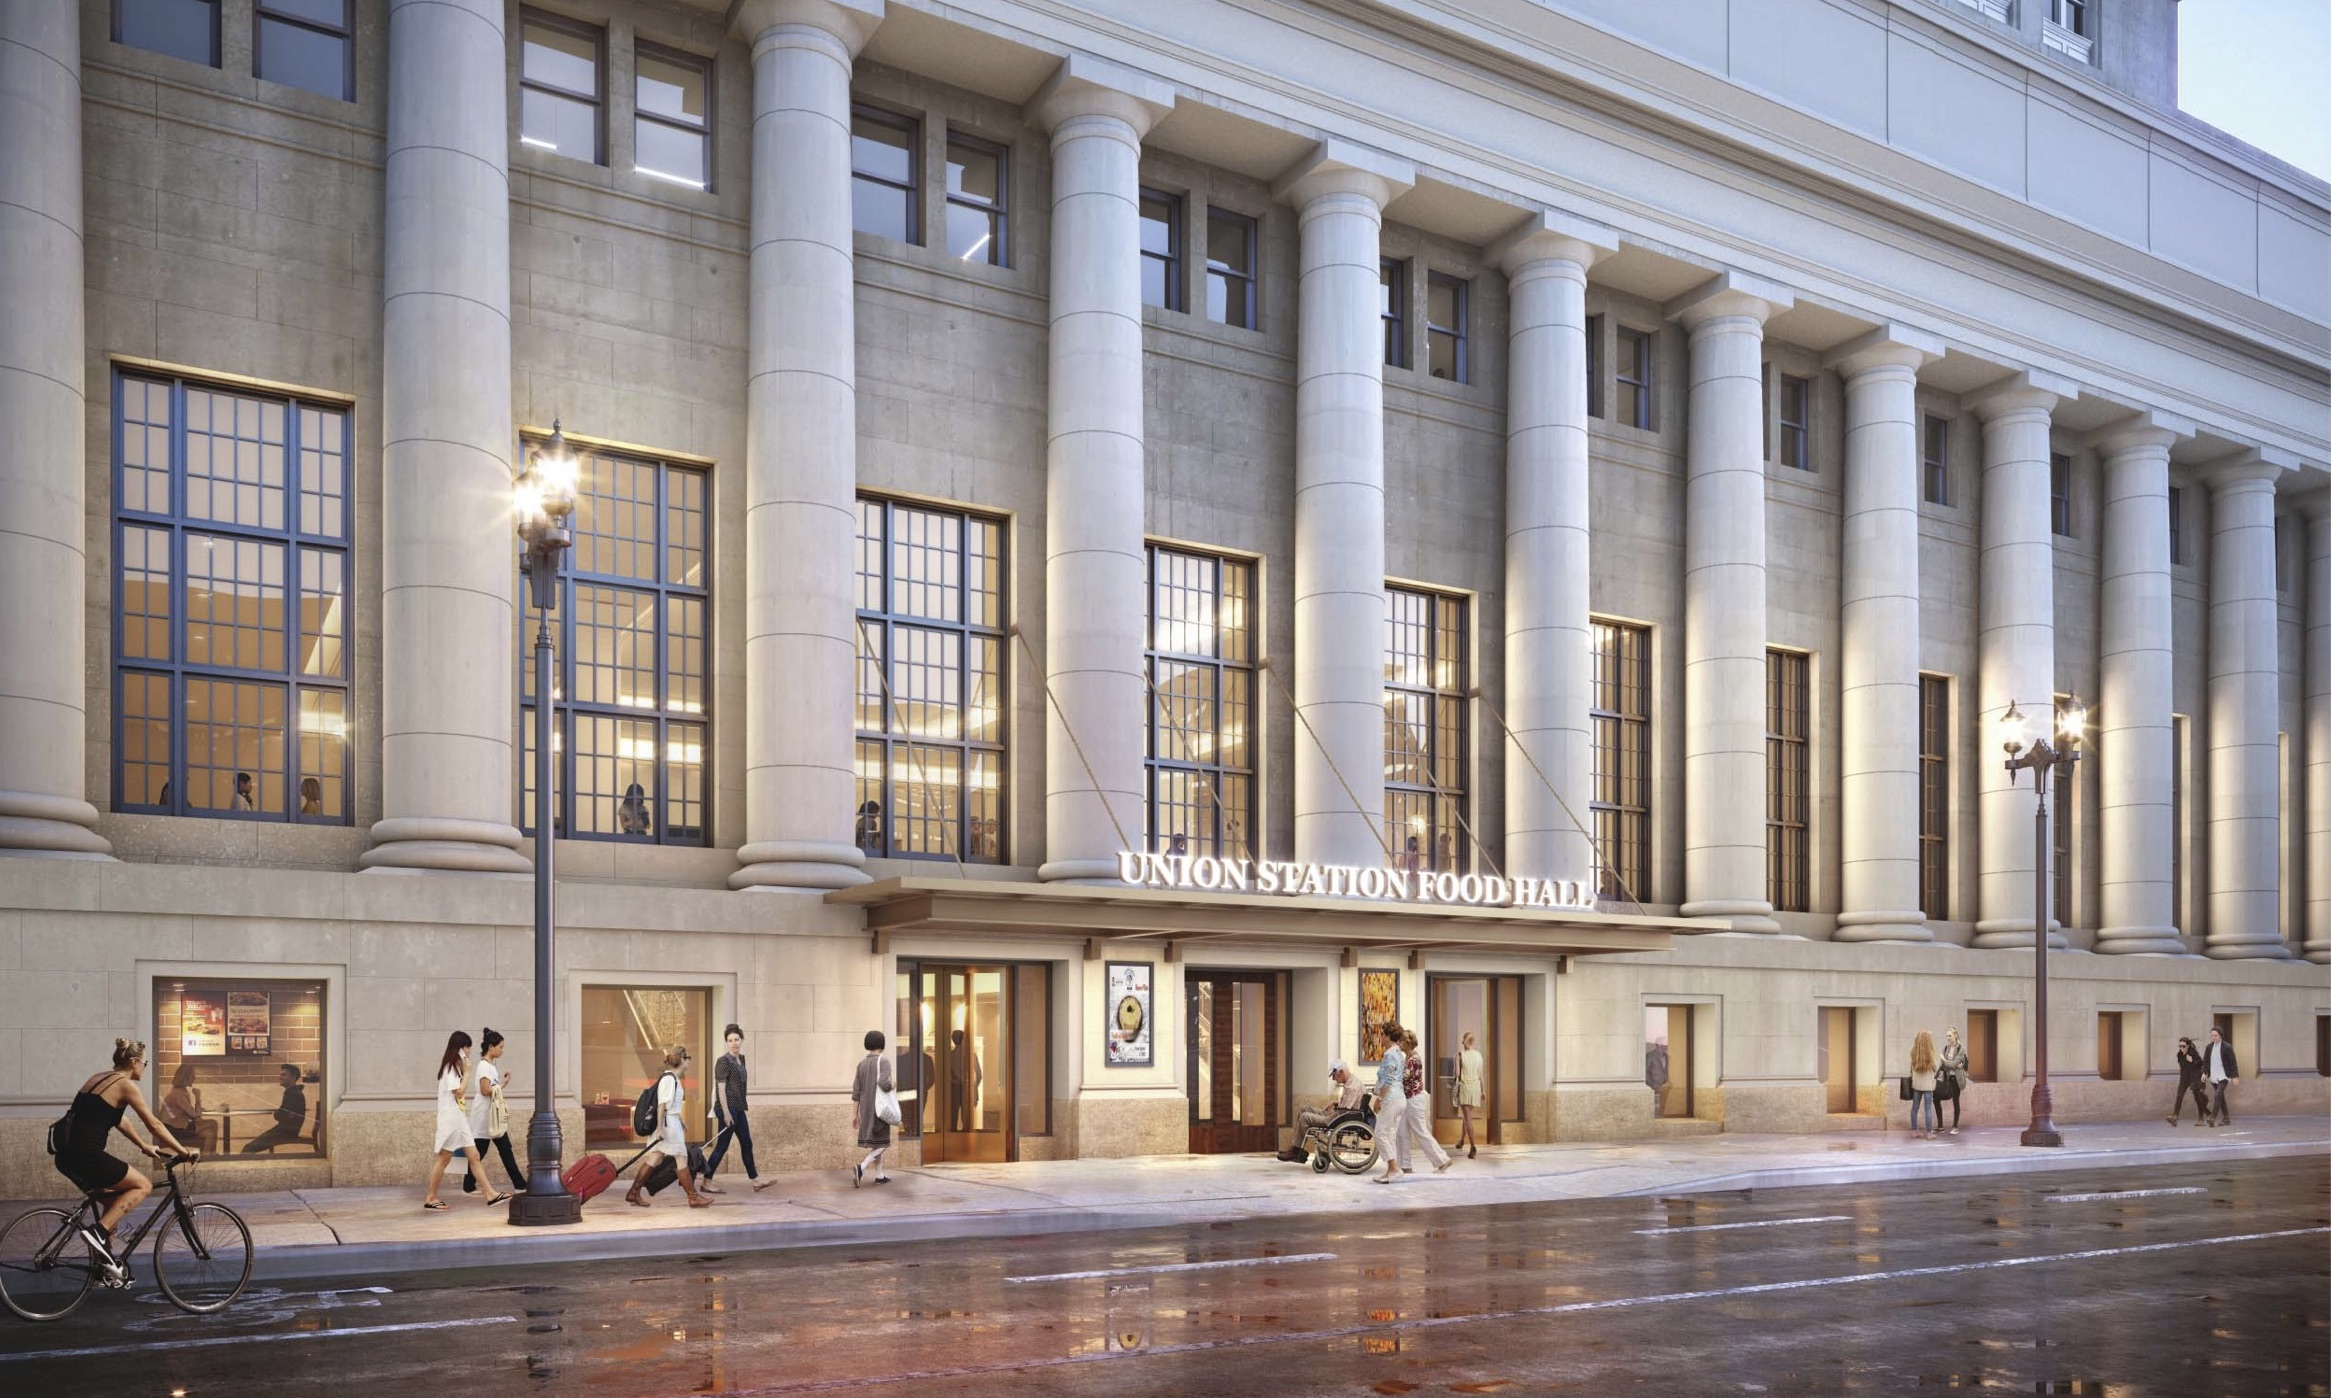 """A street-level view of Union Station's western wall, lined with round columns with windows in between. A new entrance canopy reads """"Union Station Food Hall."""""""